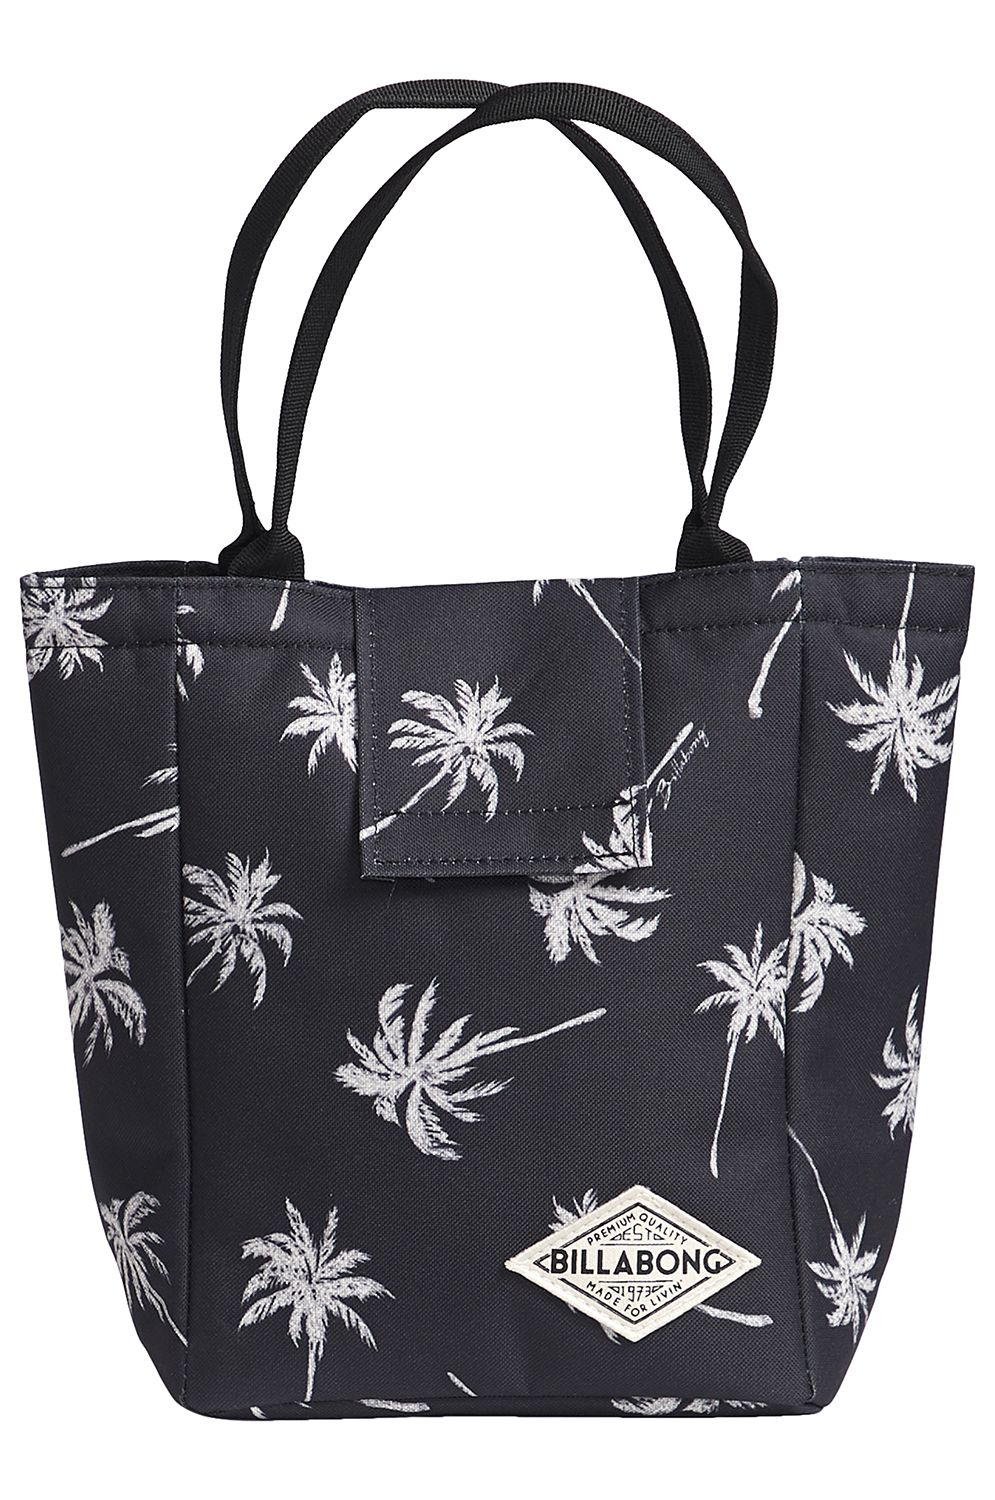 Saco Billabong LUNCH DATE Black/Whitecap